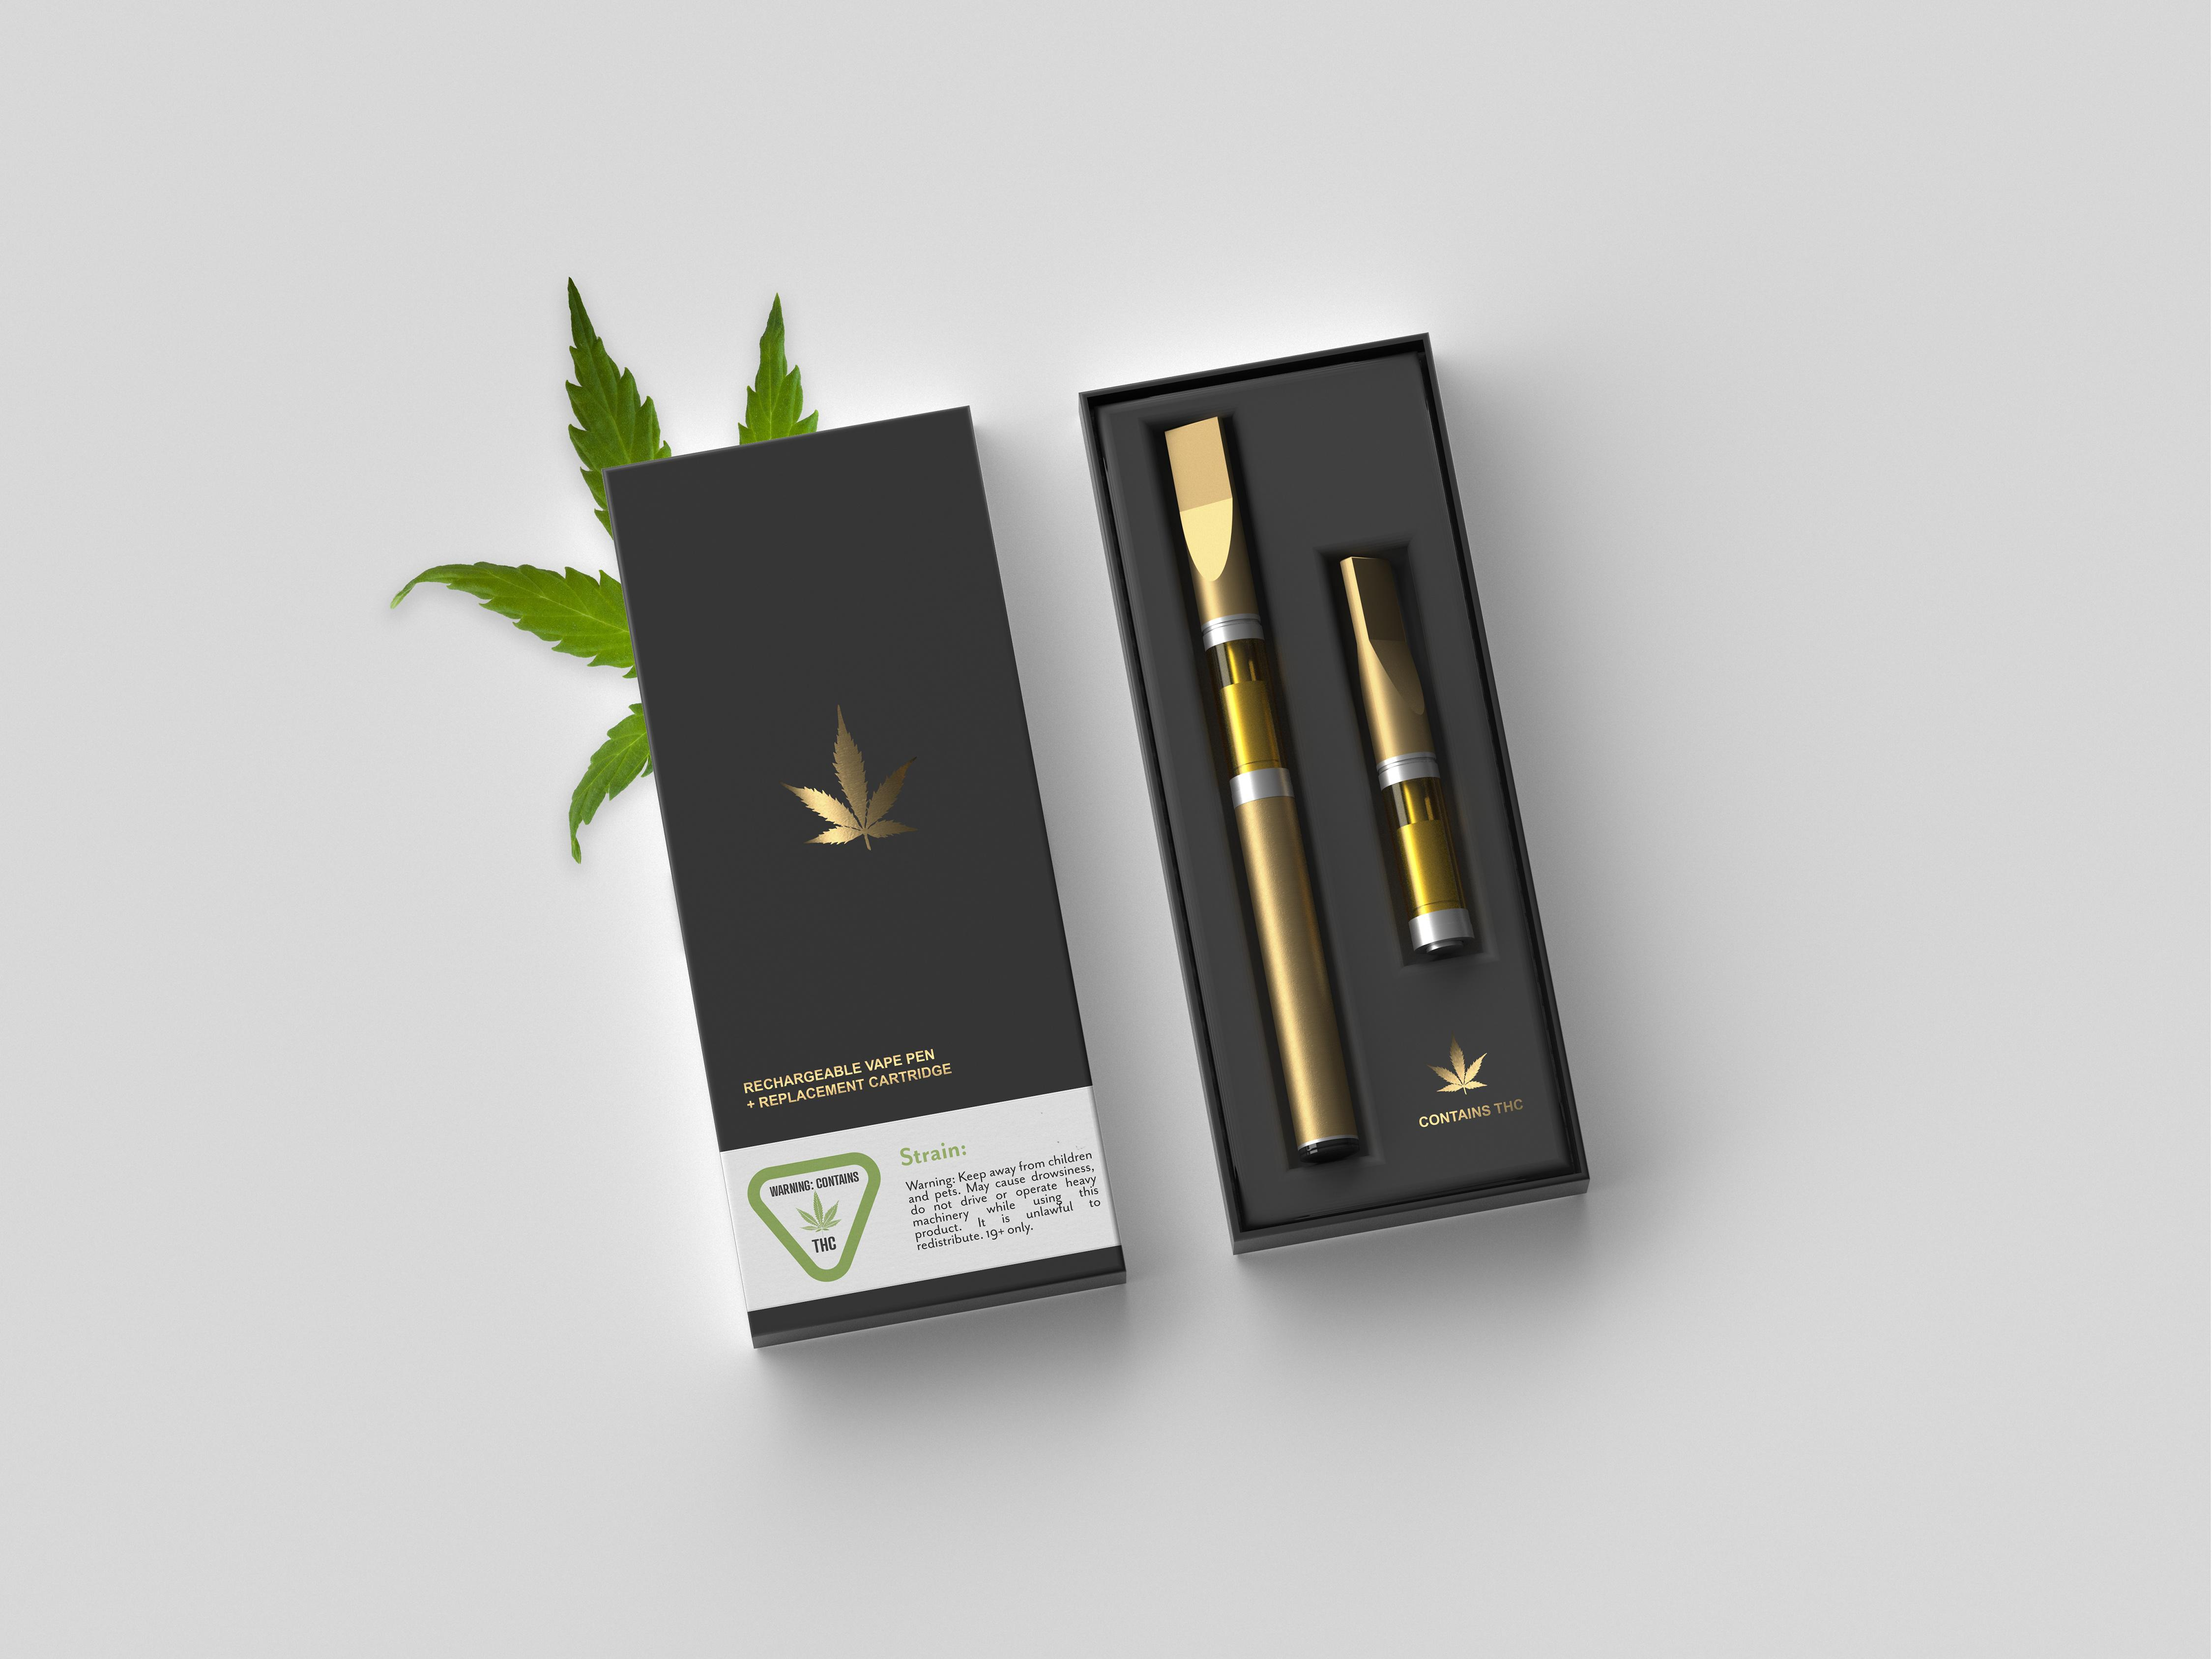 uploads///Does Vaping Cannabis Avoid Cancer Caused by Smoking